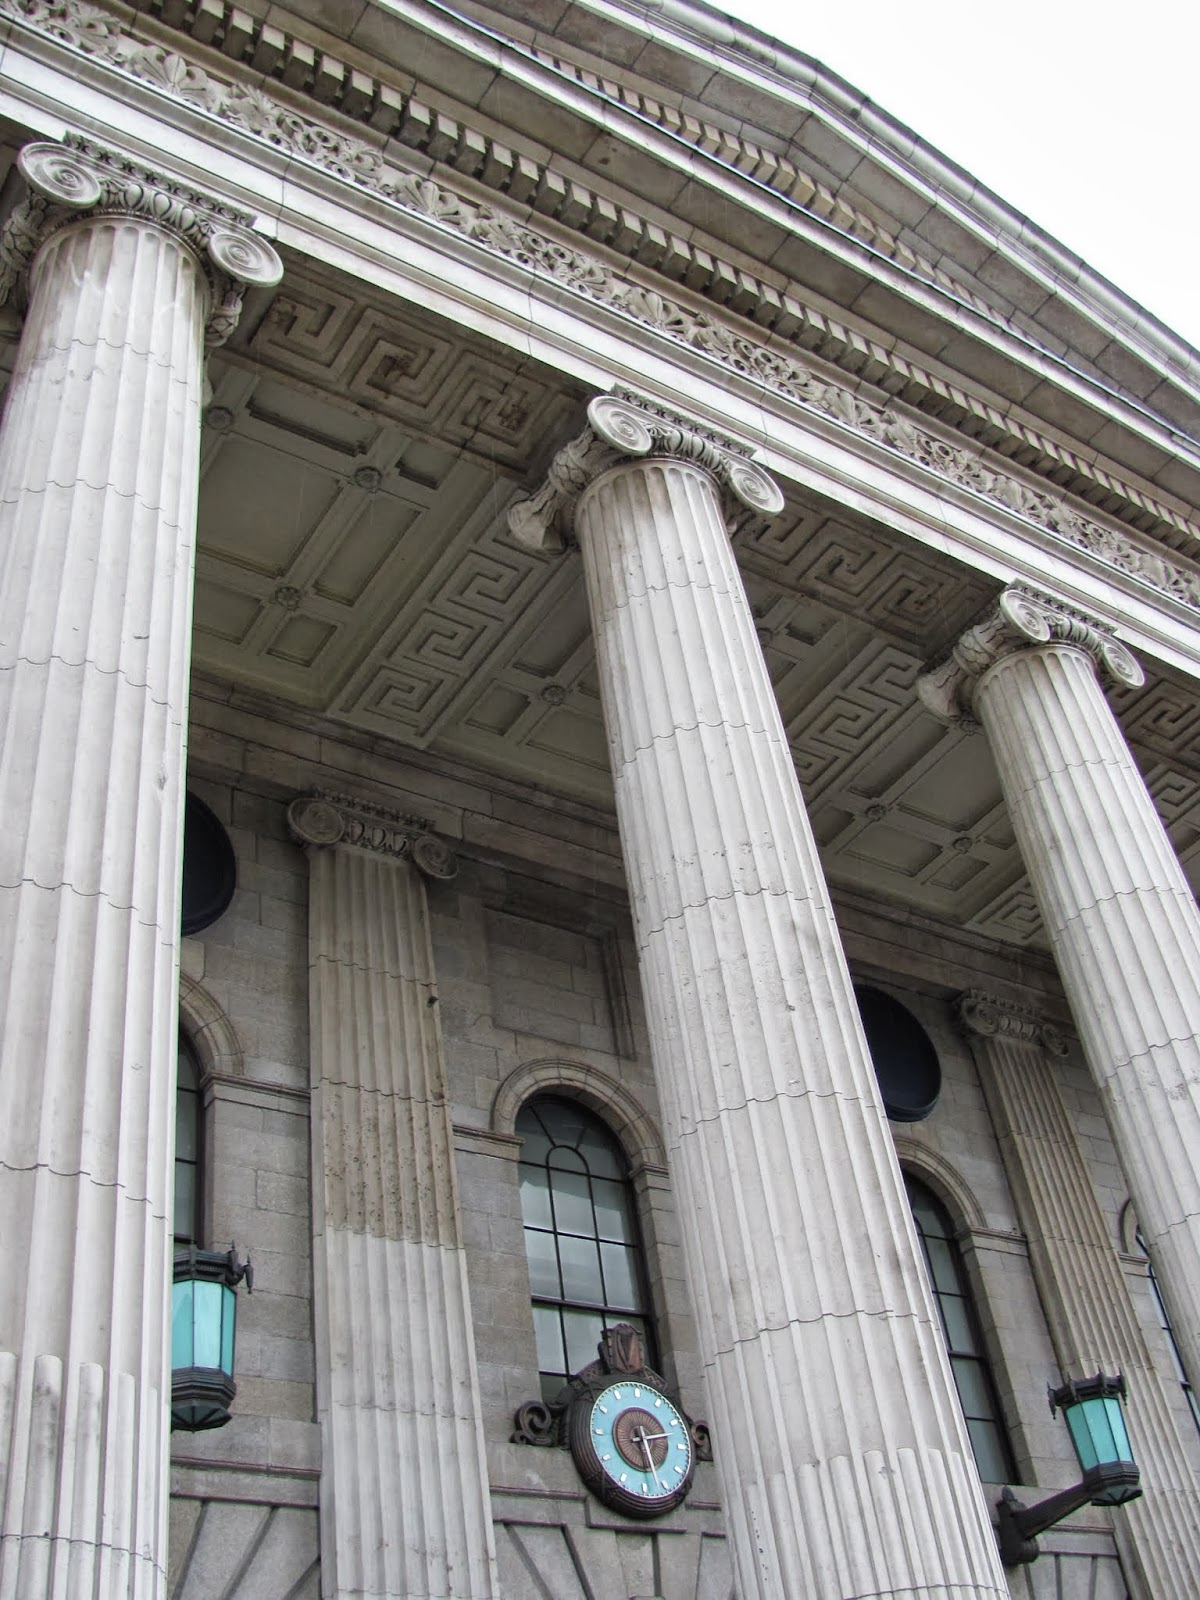 General Post Office in Dublin, Ireland